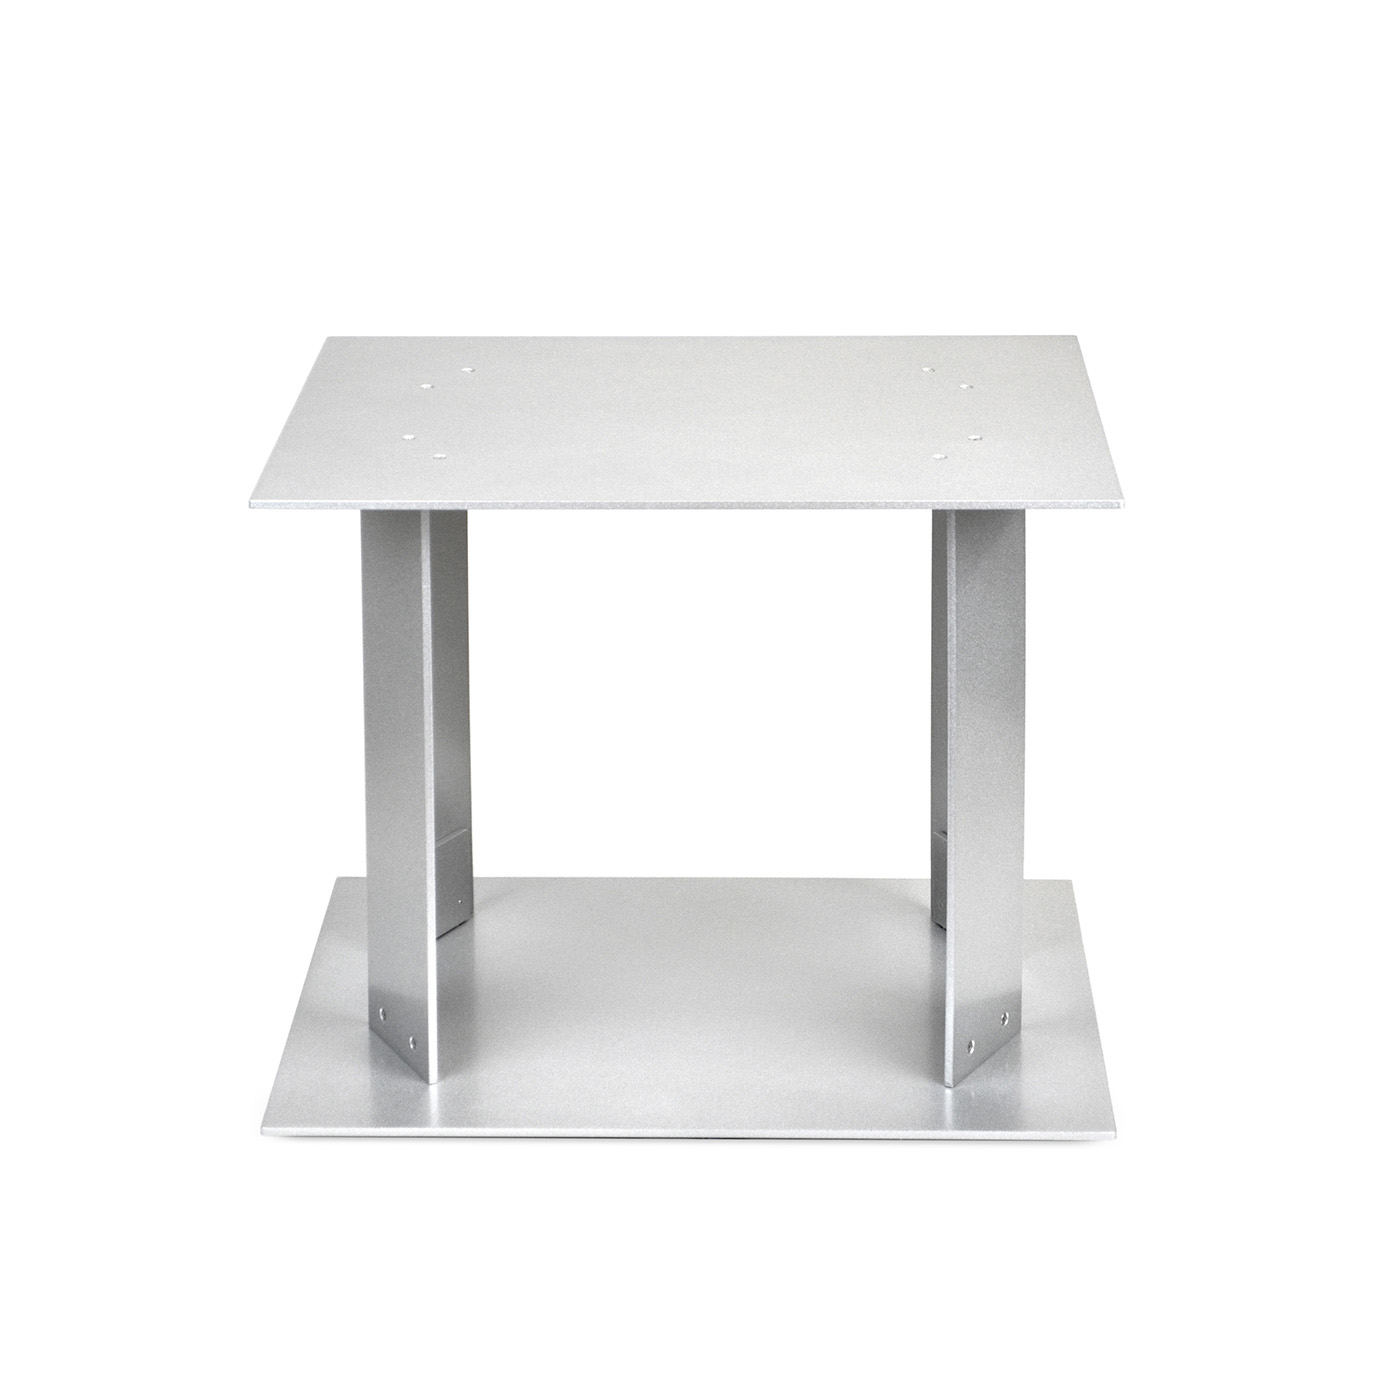 Urbann TC1 Coffee Table side large